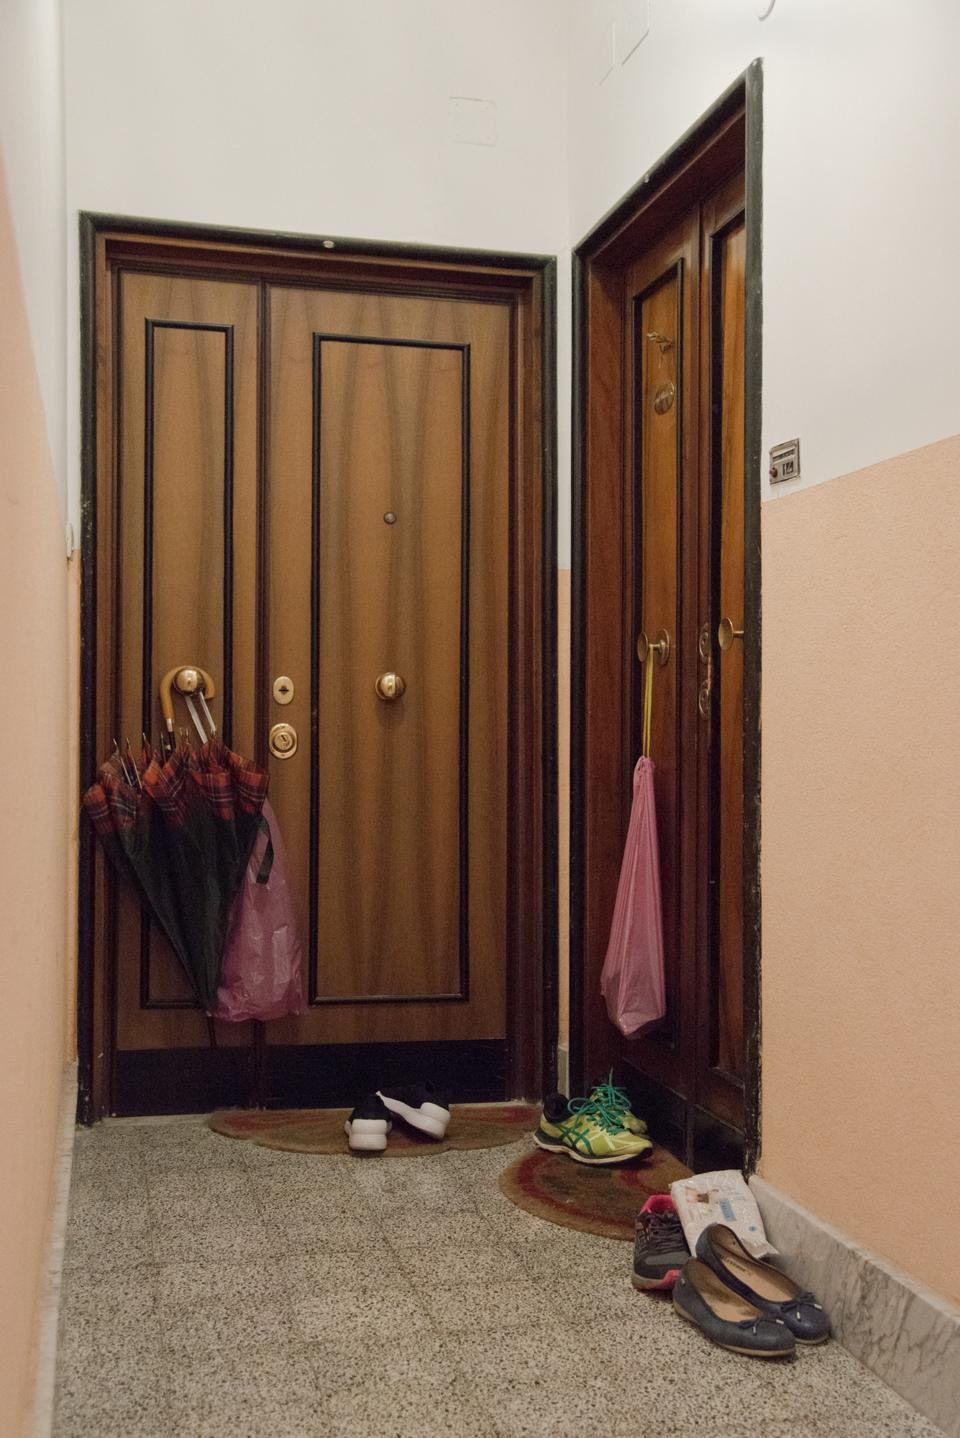 Shoes and shopping bags hang on doorways in an apartment building in Rome.